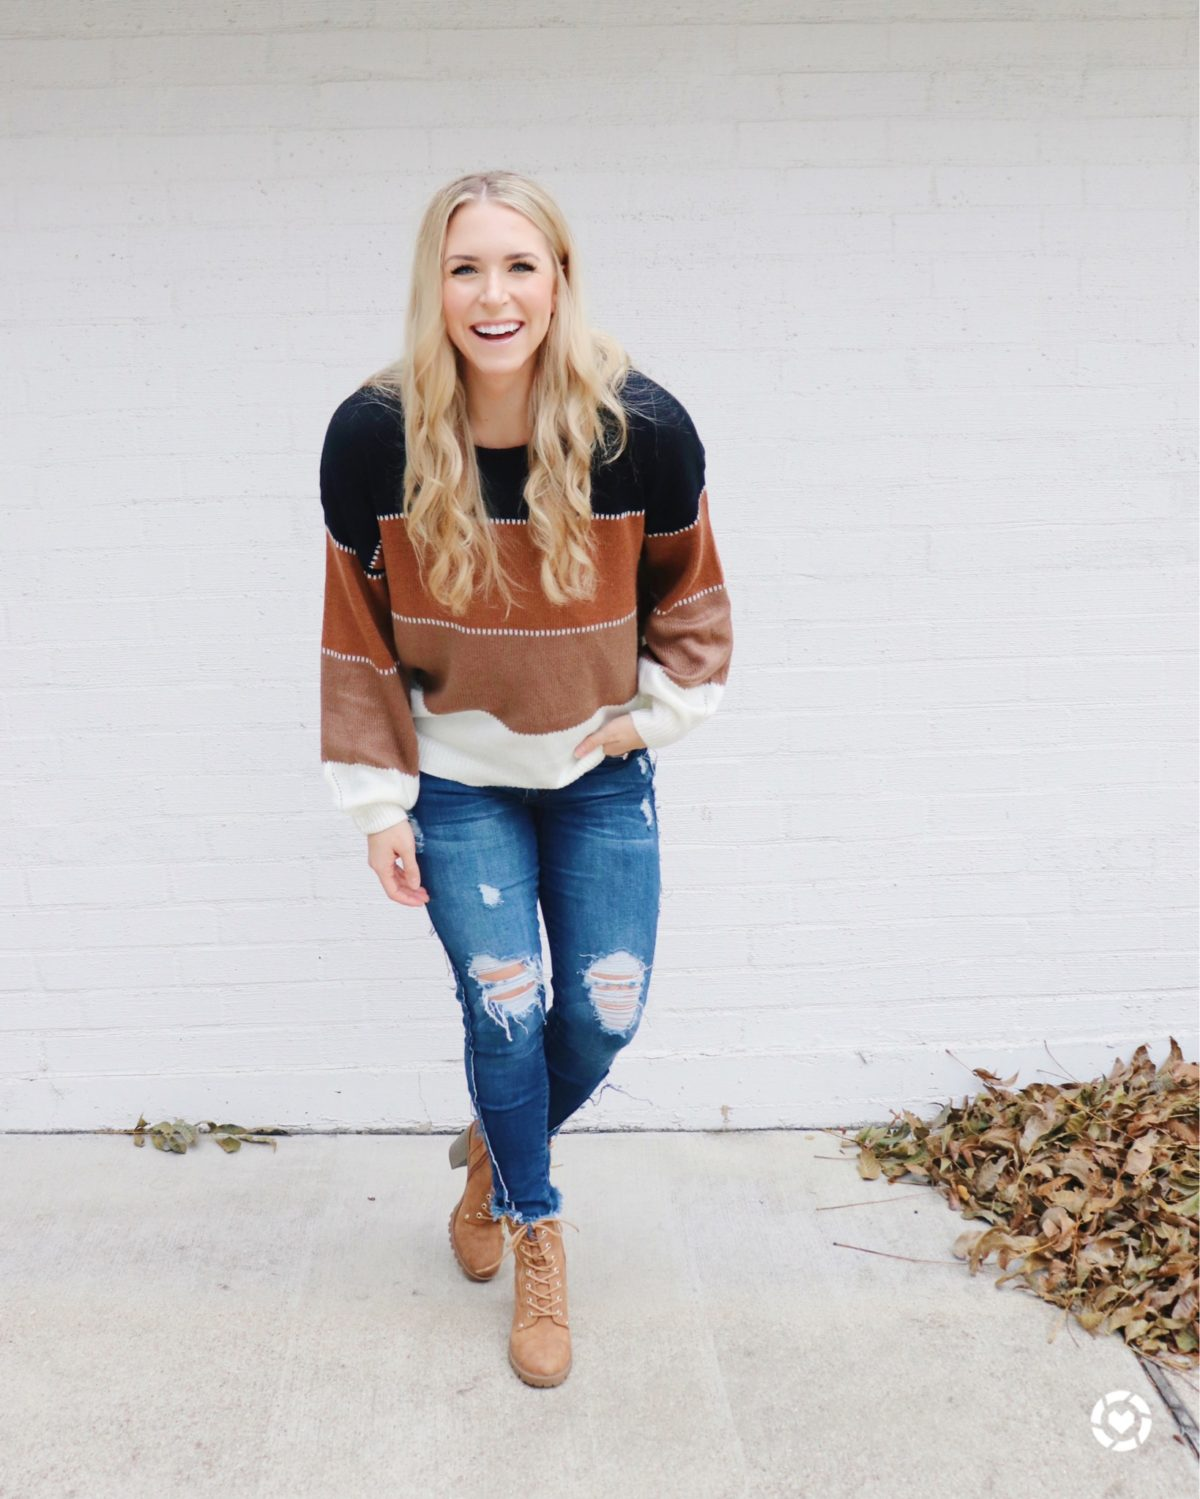 LifeStyled by ME fashion mom lifestyle blog 6 tips to be a successful entrepreneur